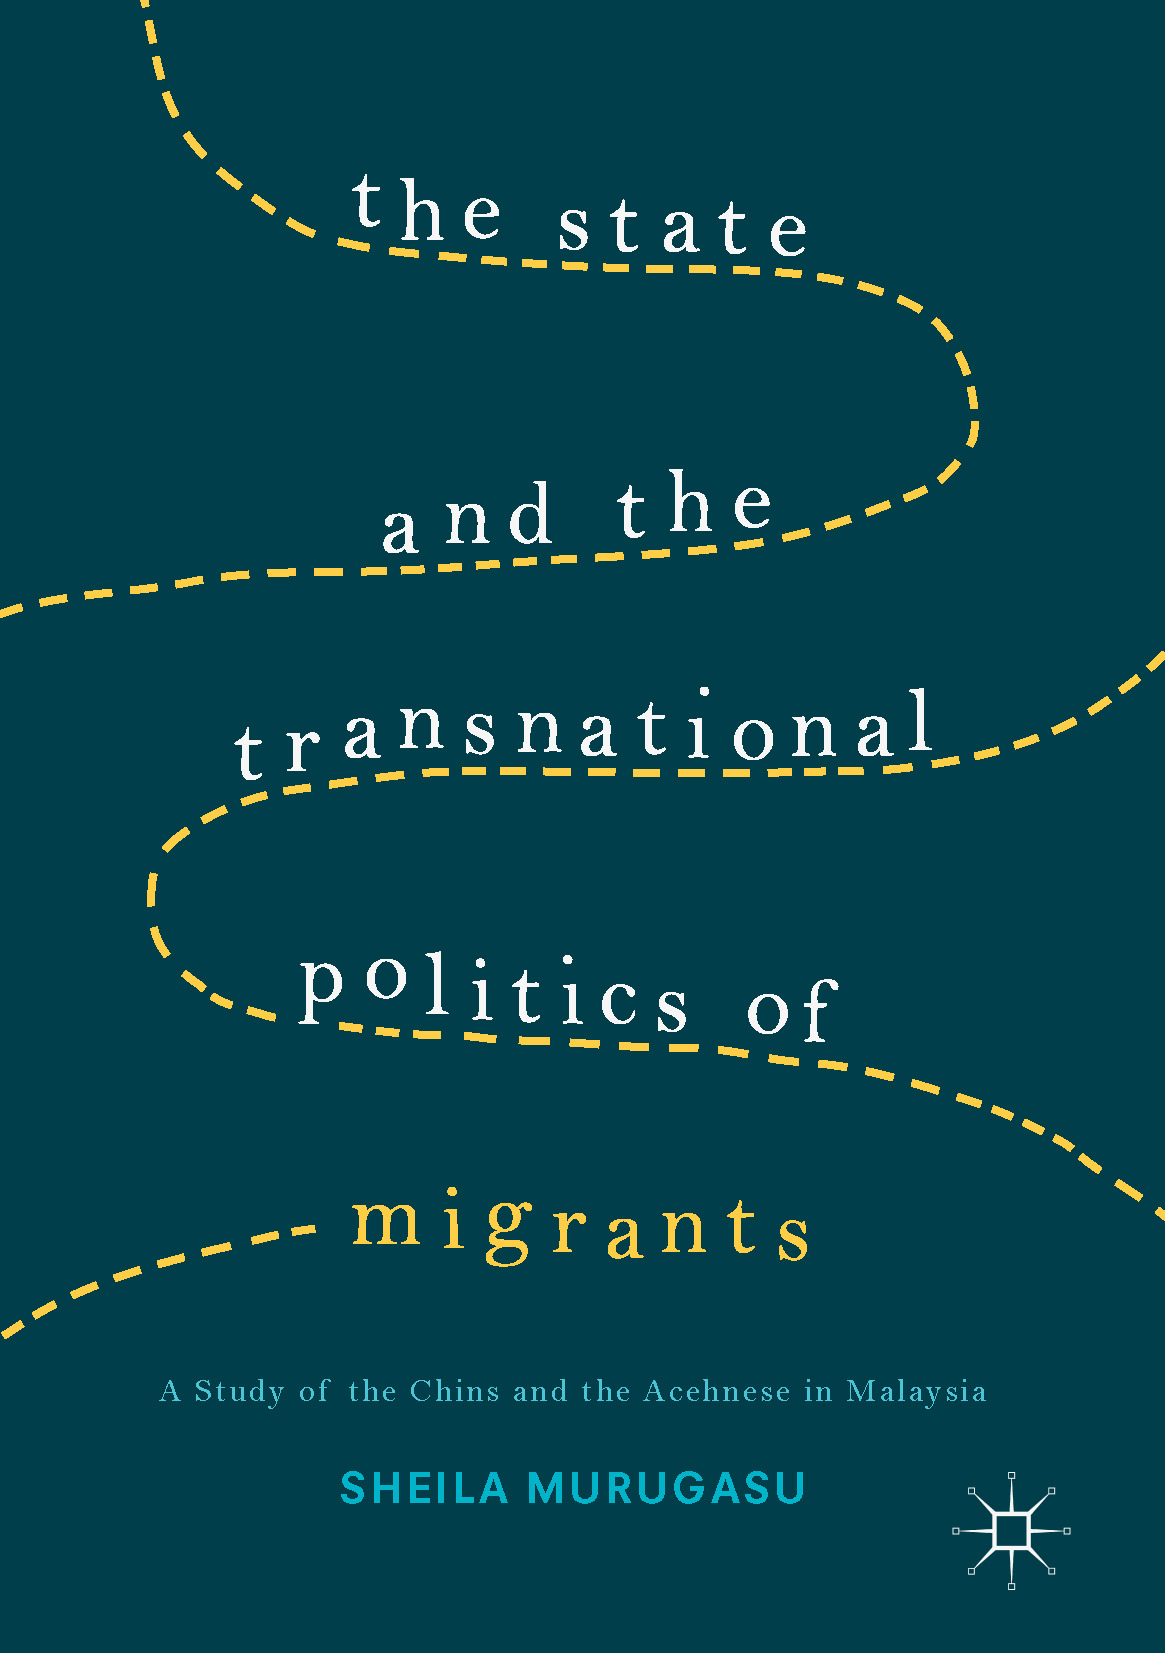 Murugasu, Sheila - The State and the Transnational Politics of Migrants: A Study of the Chins and the Acehnese in Malaysia, ebook